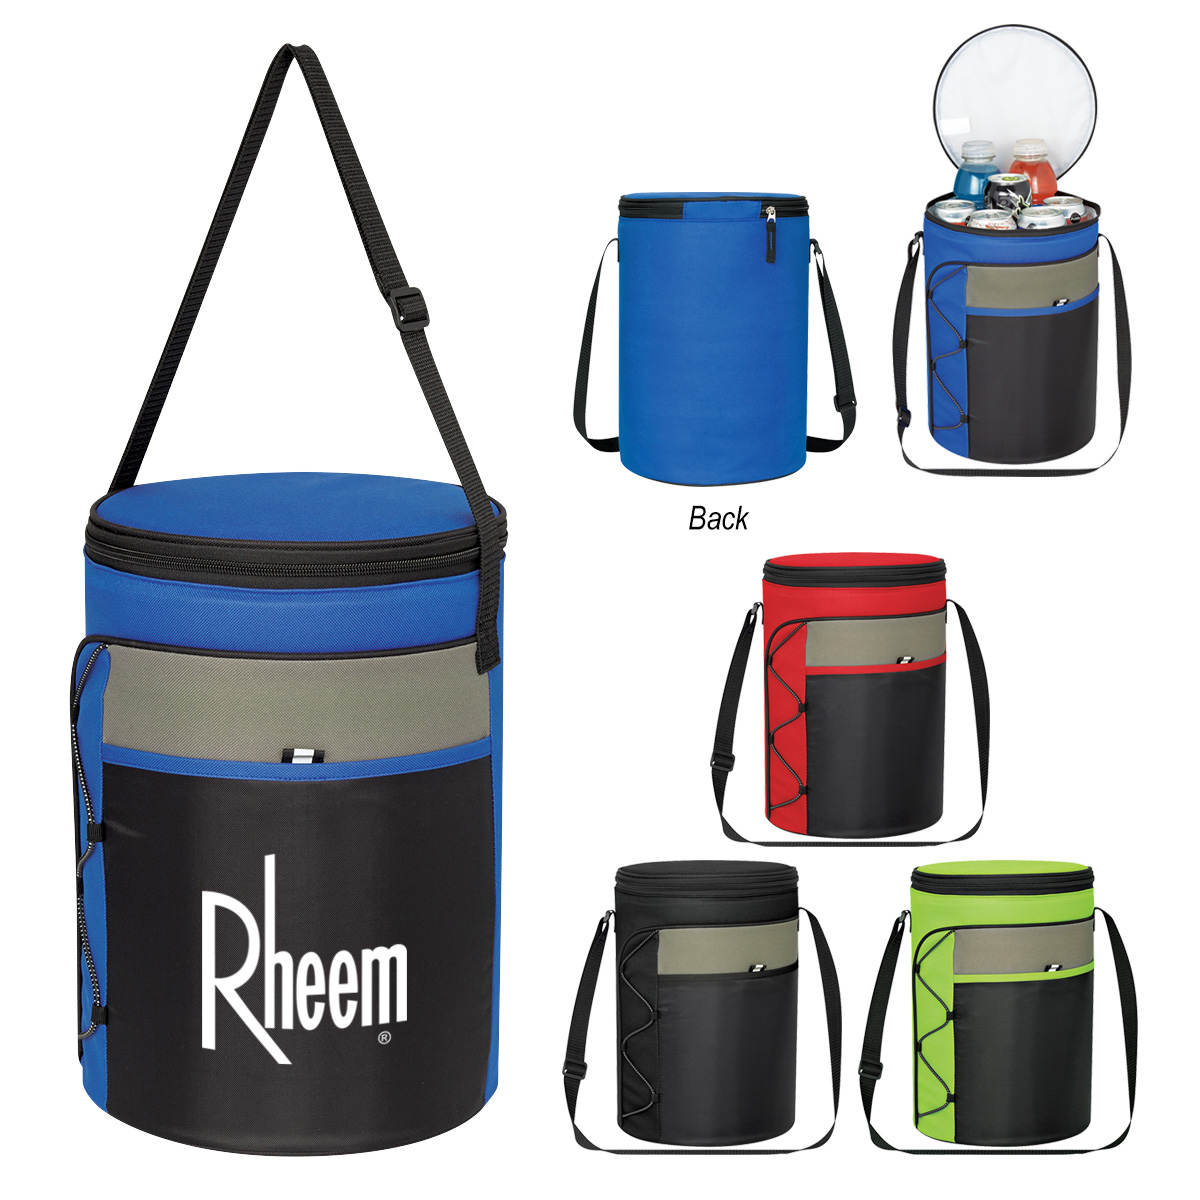 Cylindrical Insulated Cooler Bag